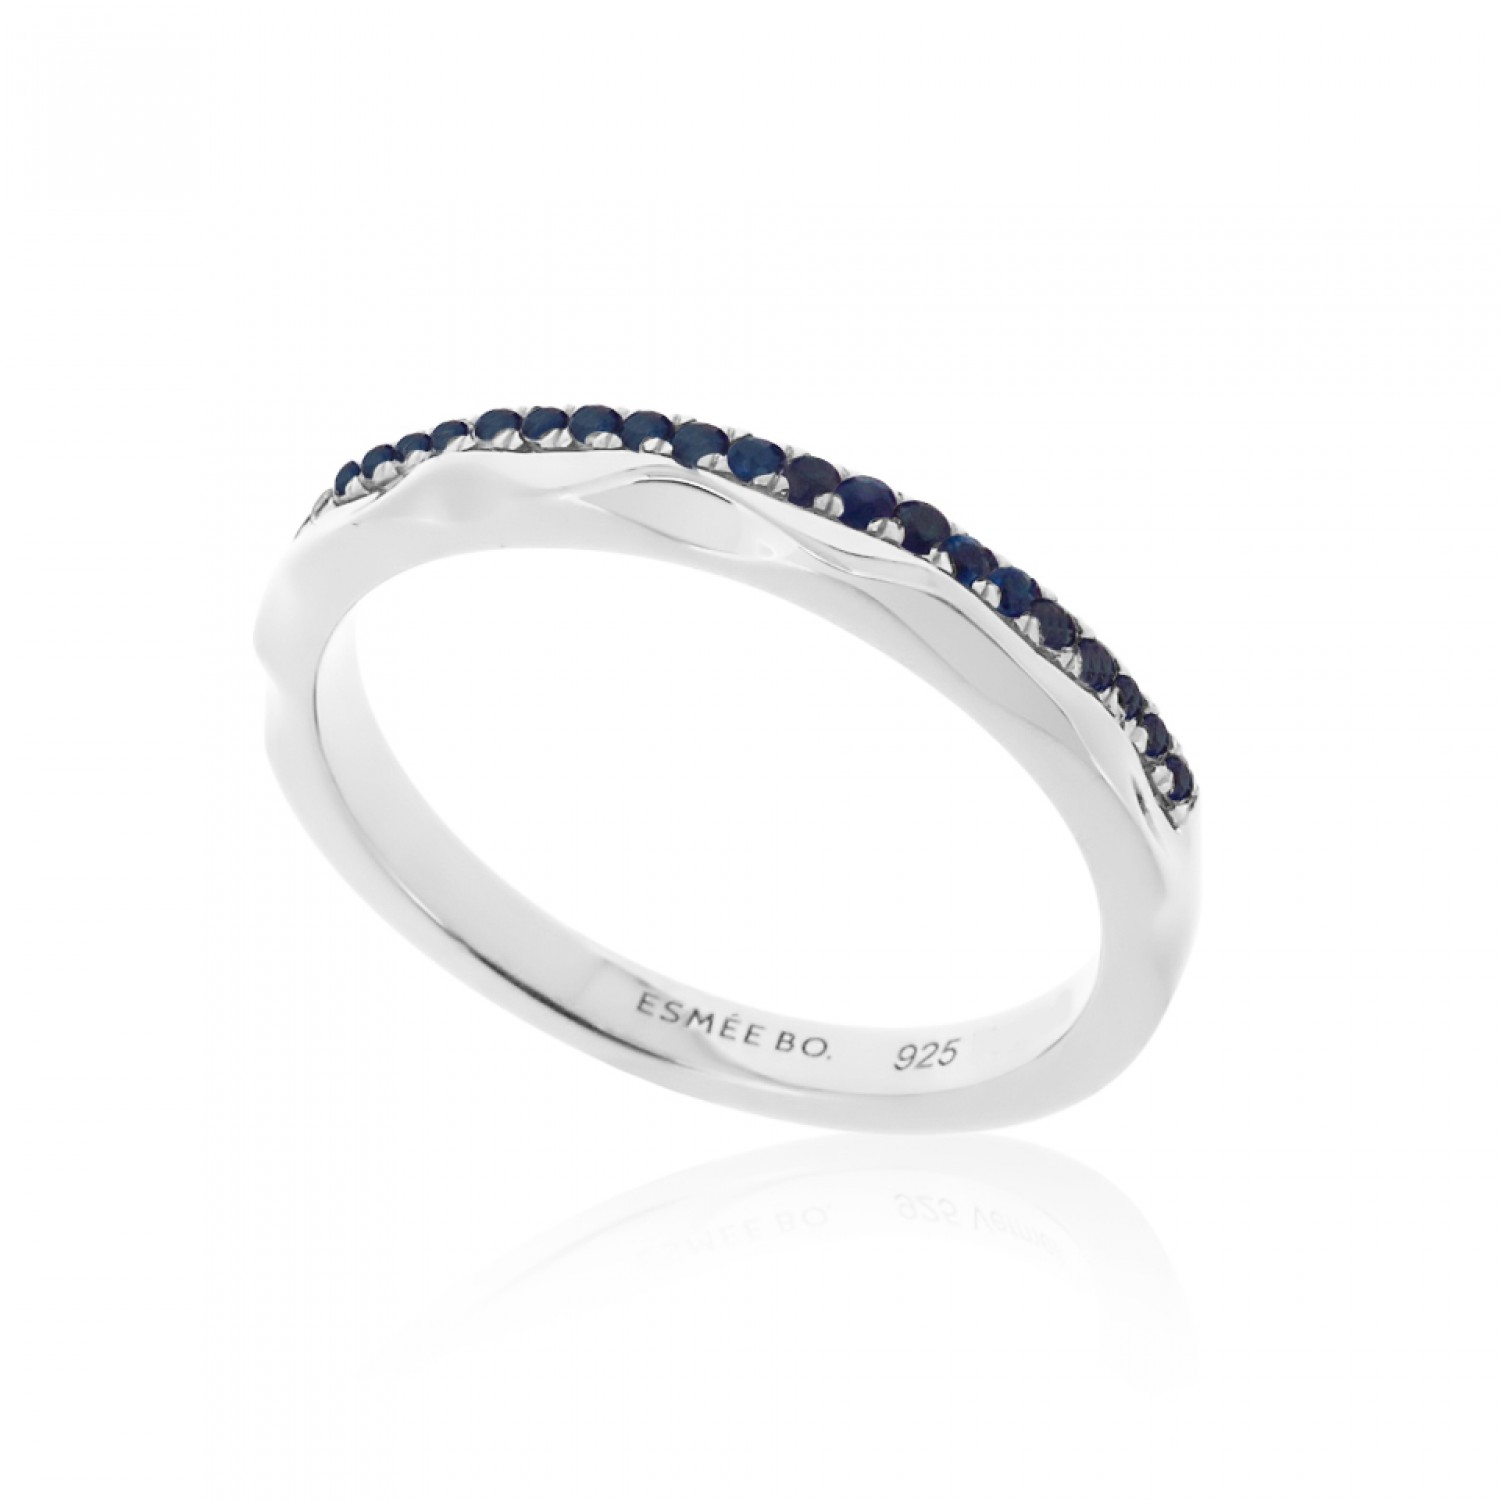 Cocoon Stacking Tiles Precious Blue Sapphire Ring